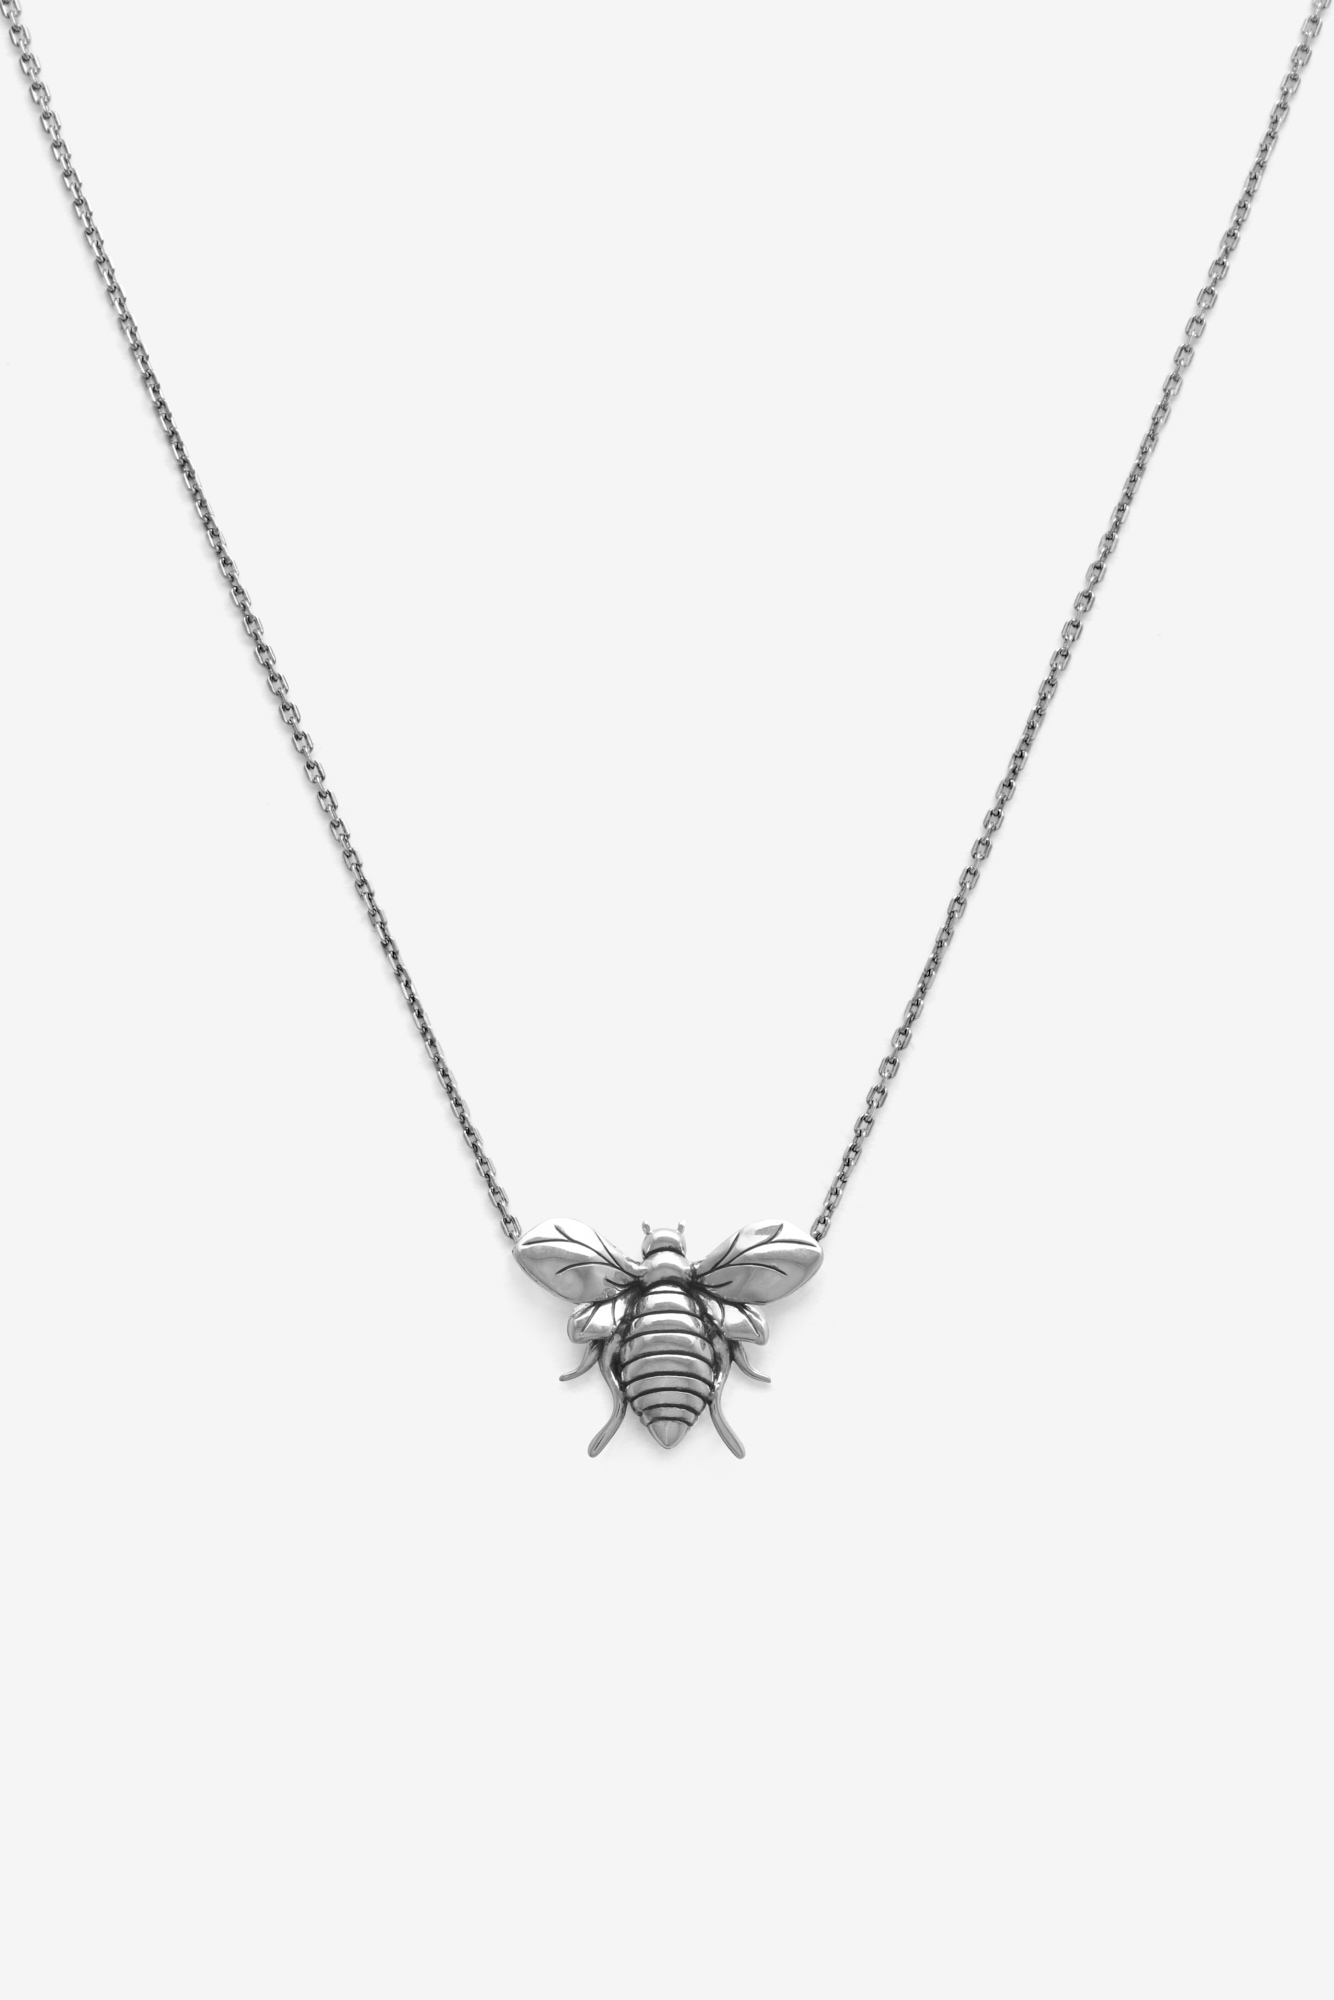 19-03-5-1-002-114-10_Bee Necklace_Silver_02